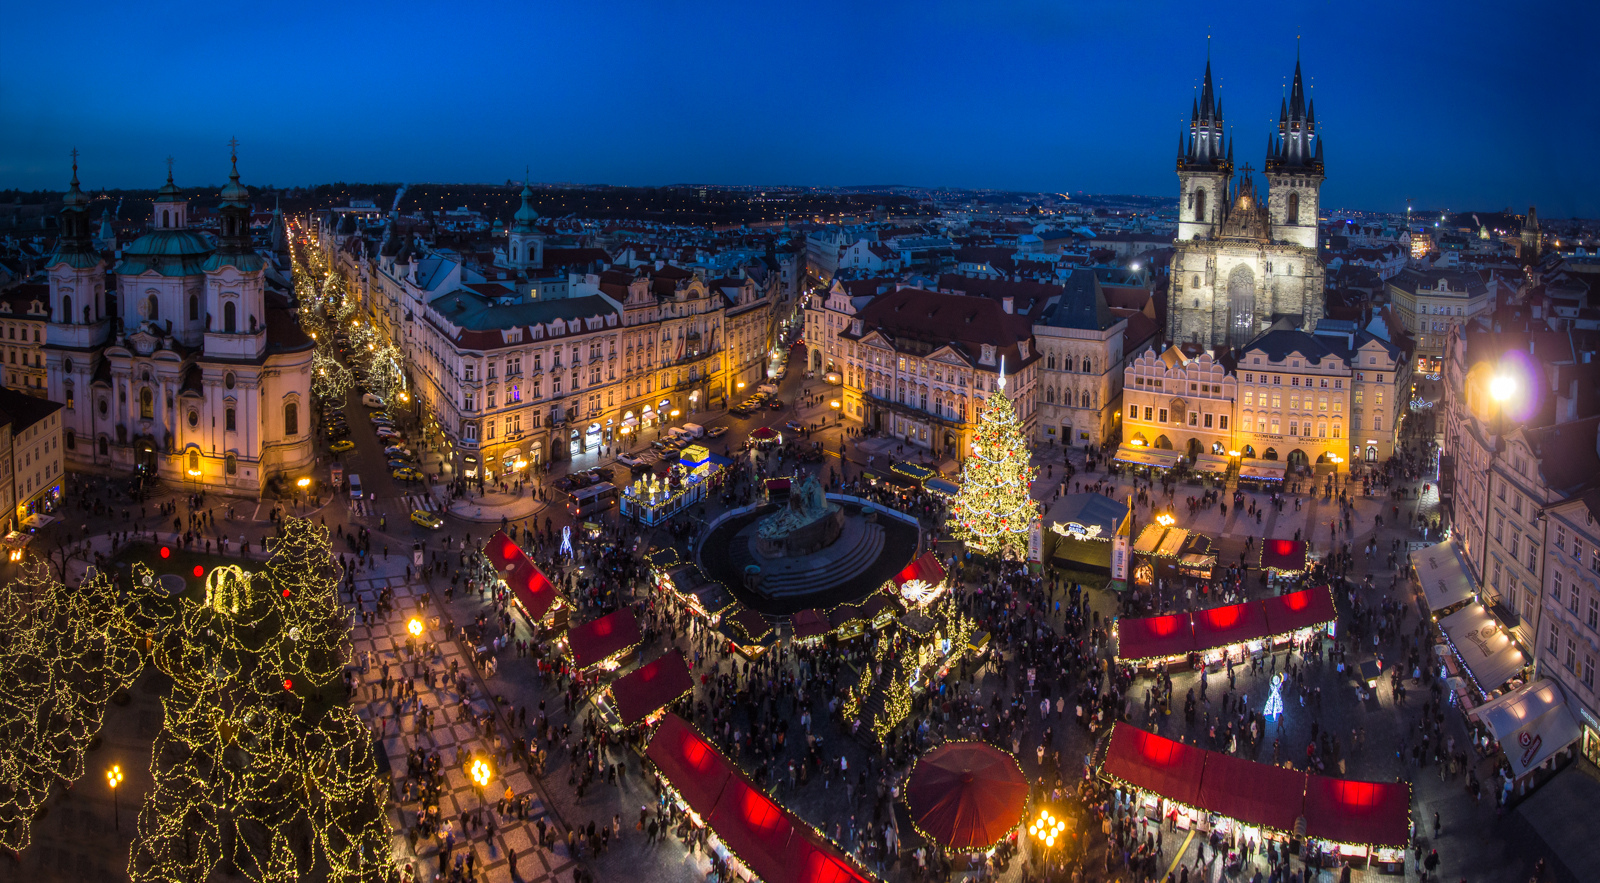 https://www.reddit.com/r/europe/comments/2m9zdc/ultimate_christmas_markets_guide/